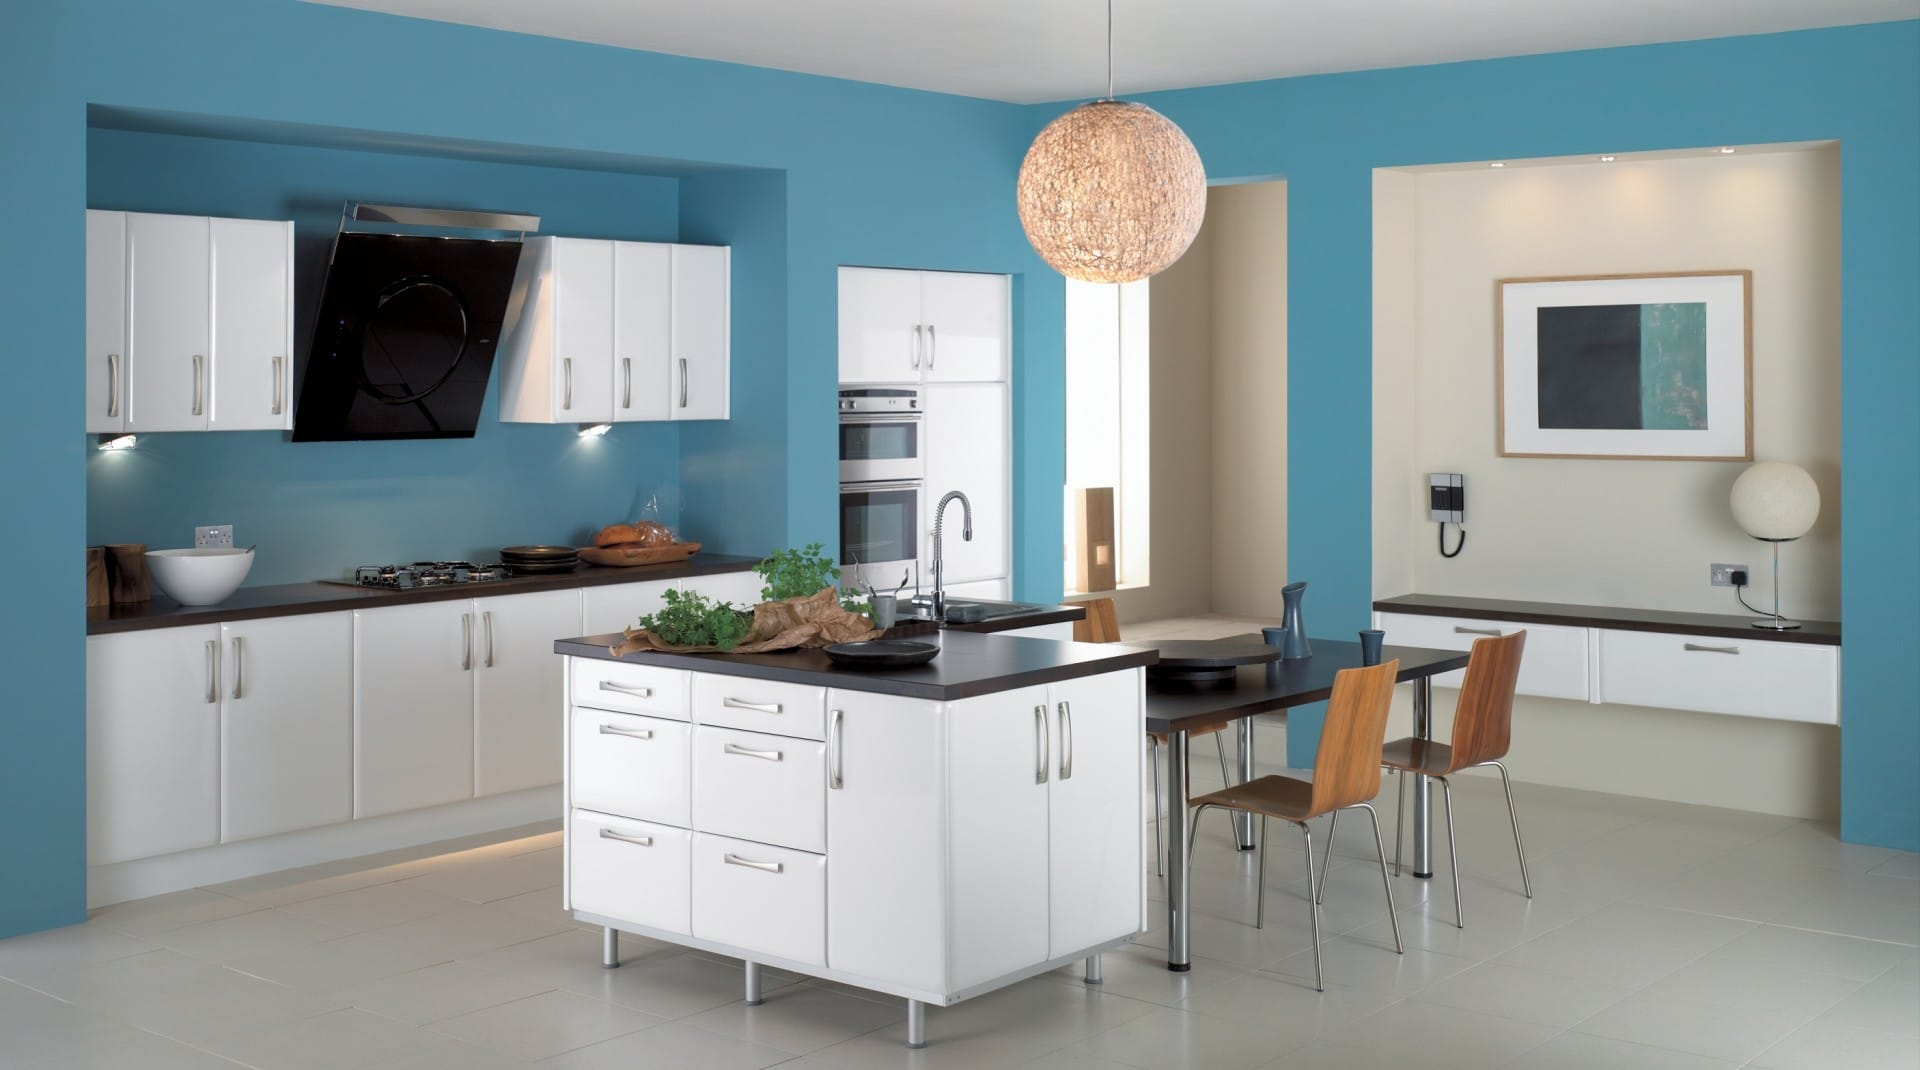 What is the best color to paint the walls of small kitchen for Kitchen ideas colors